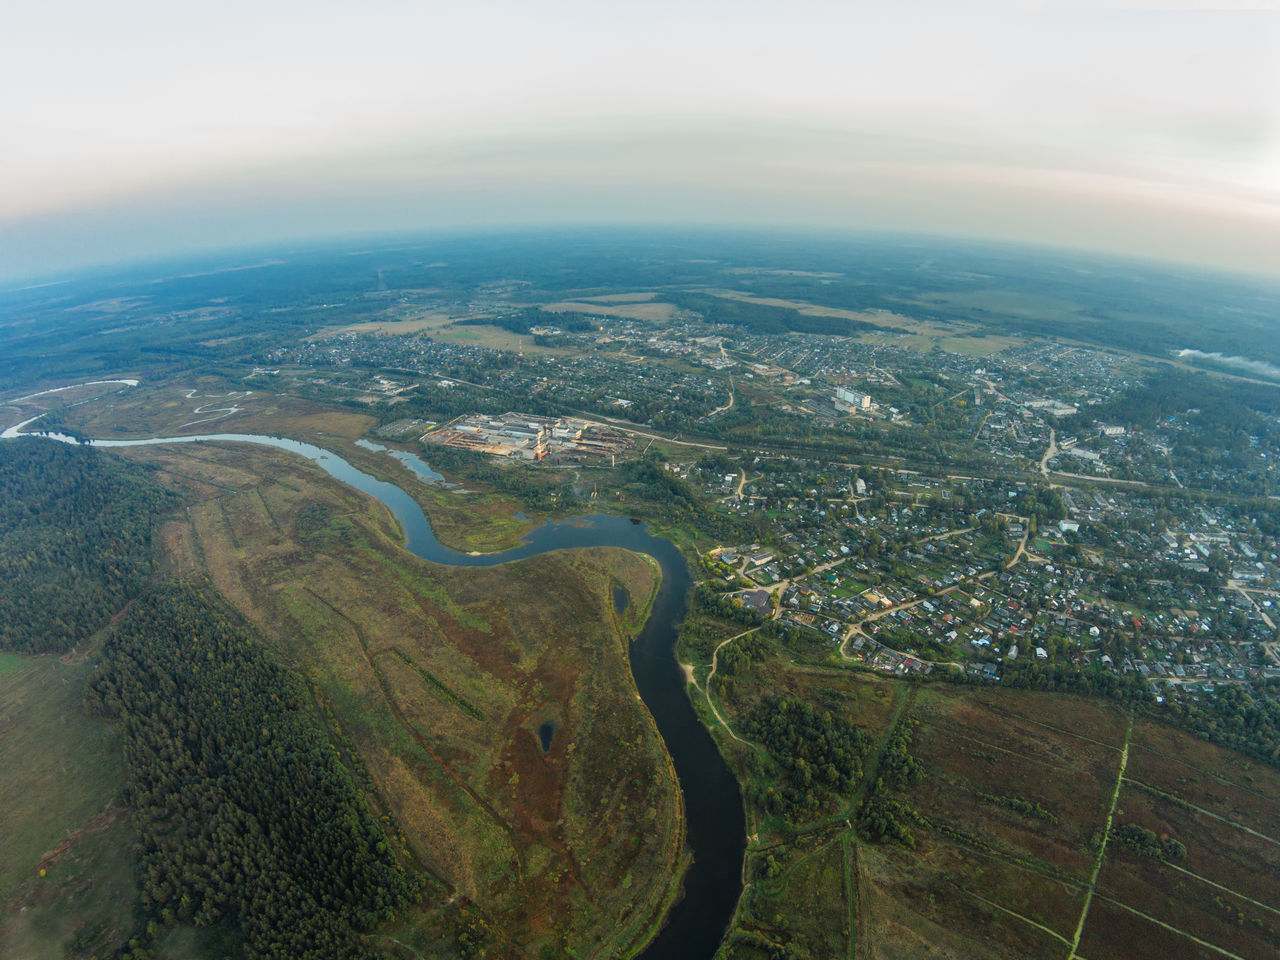 The view from the height of the river Mologa and town Maksatikha. A Bird's Eye View Aerial View Beauty In Nature City Countryside Day Dji Dji Phantom High Angle View Landscape Mologa Nature Nature No People Outdoors River Scenics Sky And Clouds Top Perspective